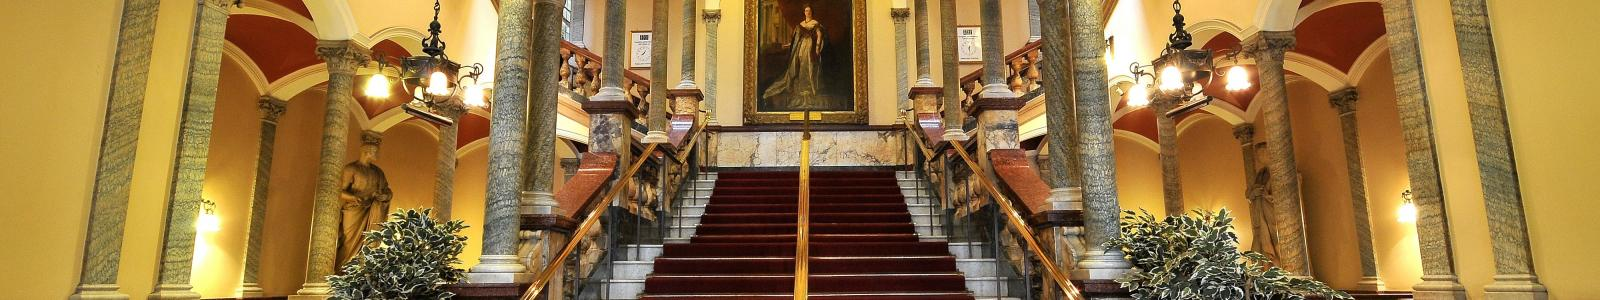 Hull Ciity Hall main staircase